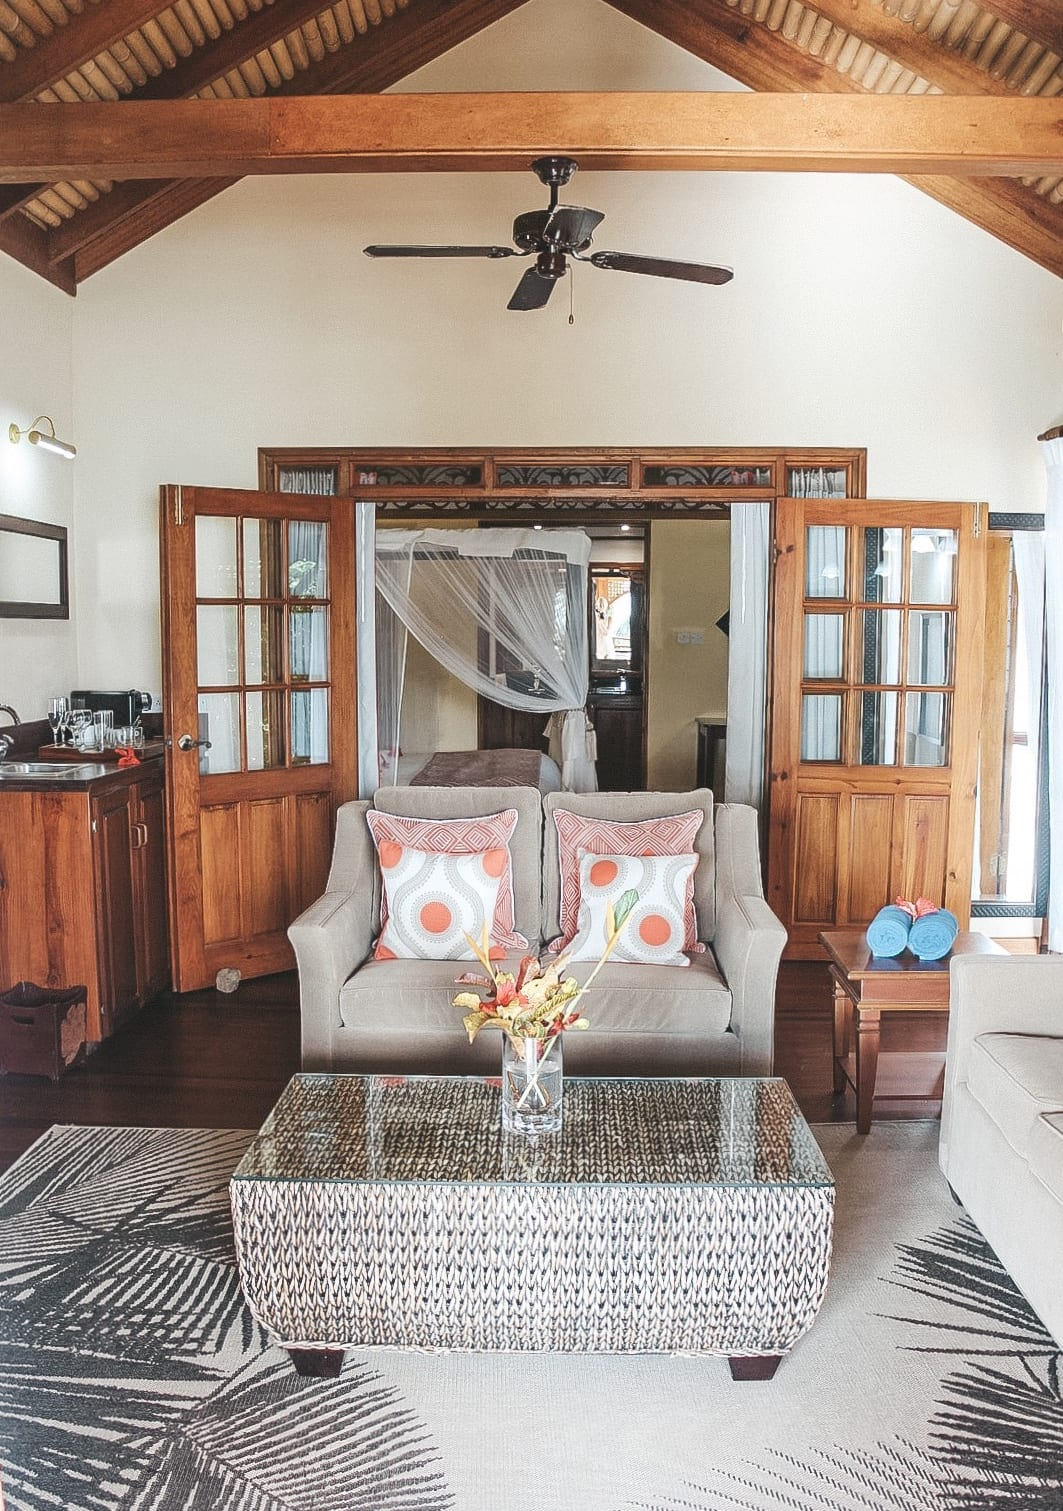 Water's Edge Cottage at Calabash Cove St. Lucia